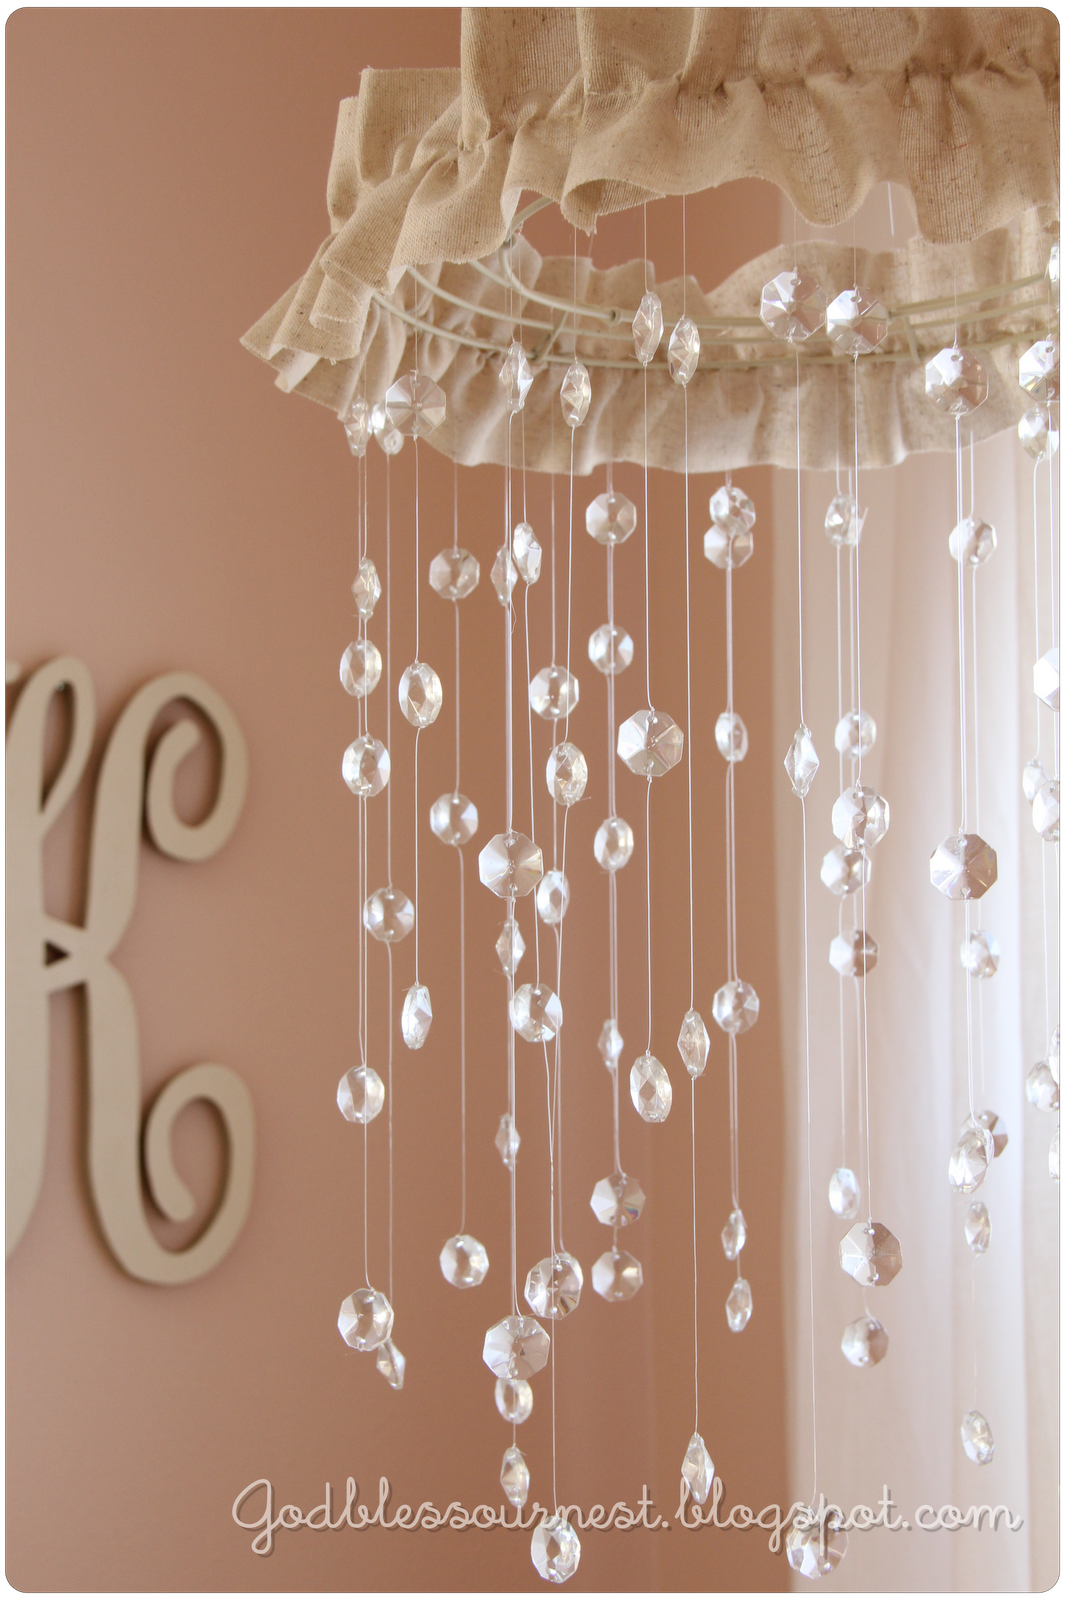 Diy crystal mobile pretty for even a big girls room baby items diy crystal mobile pretty for even a big girls room aloadofball